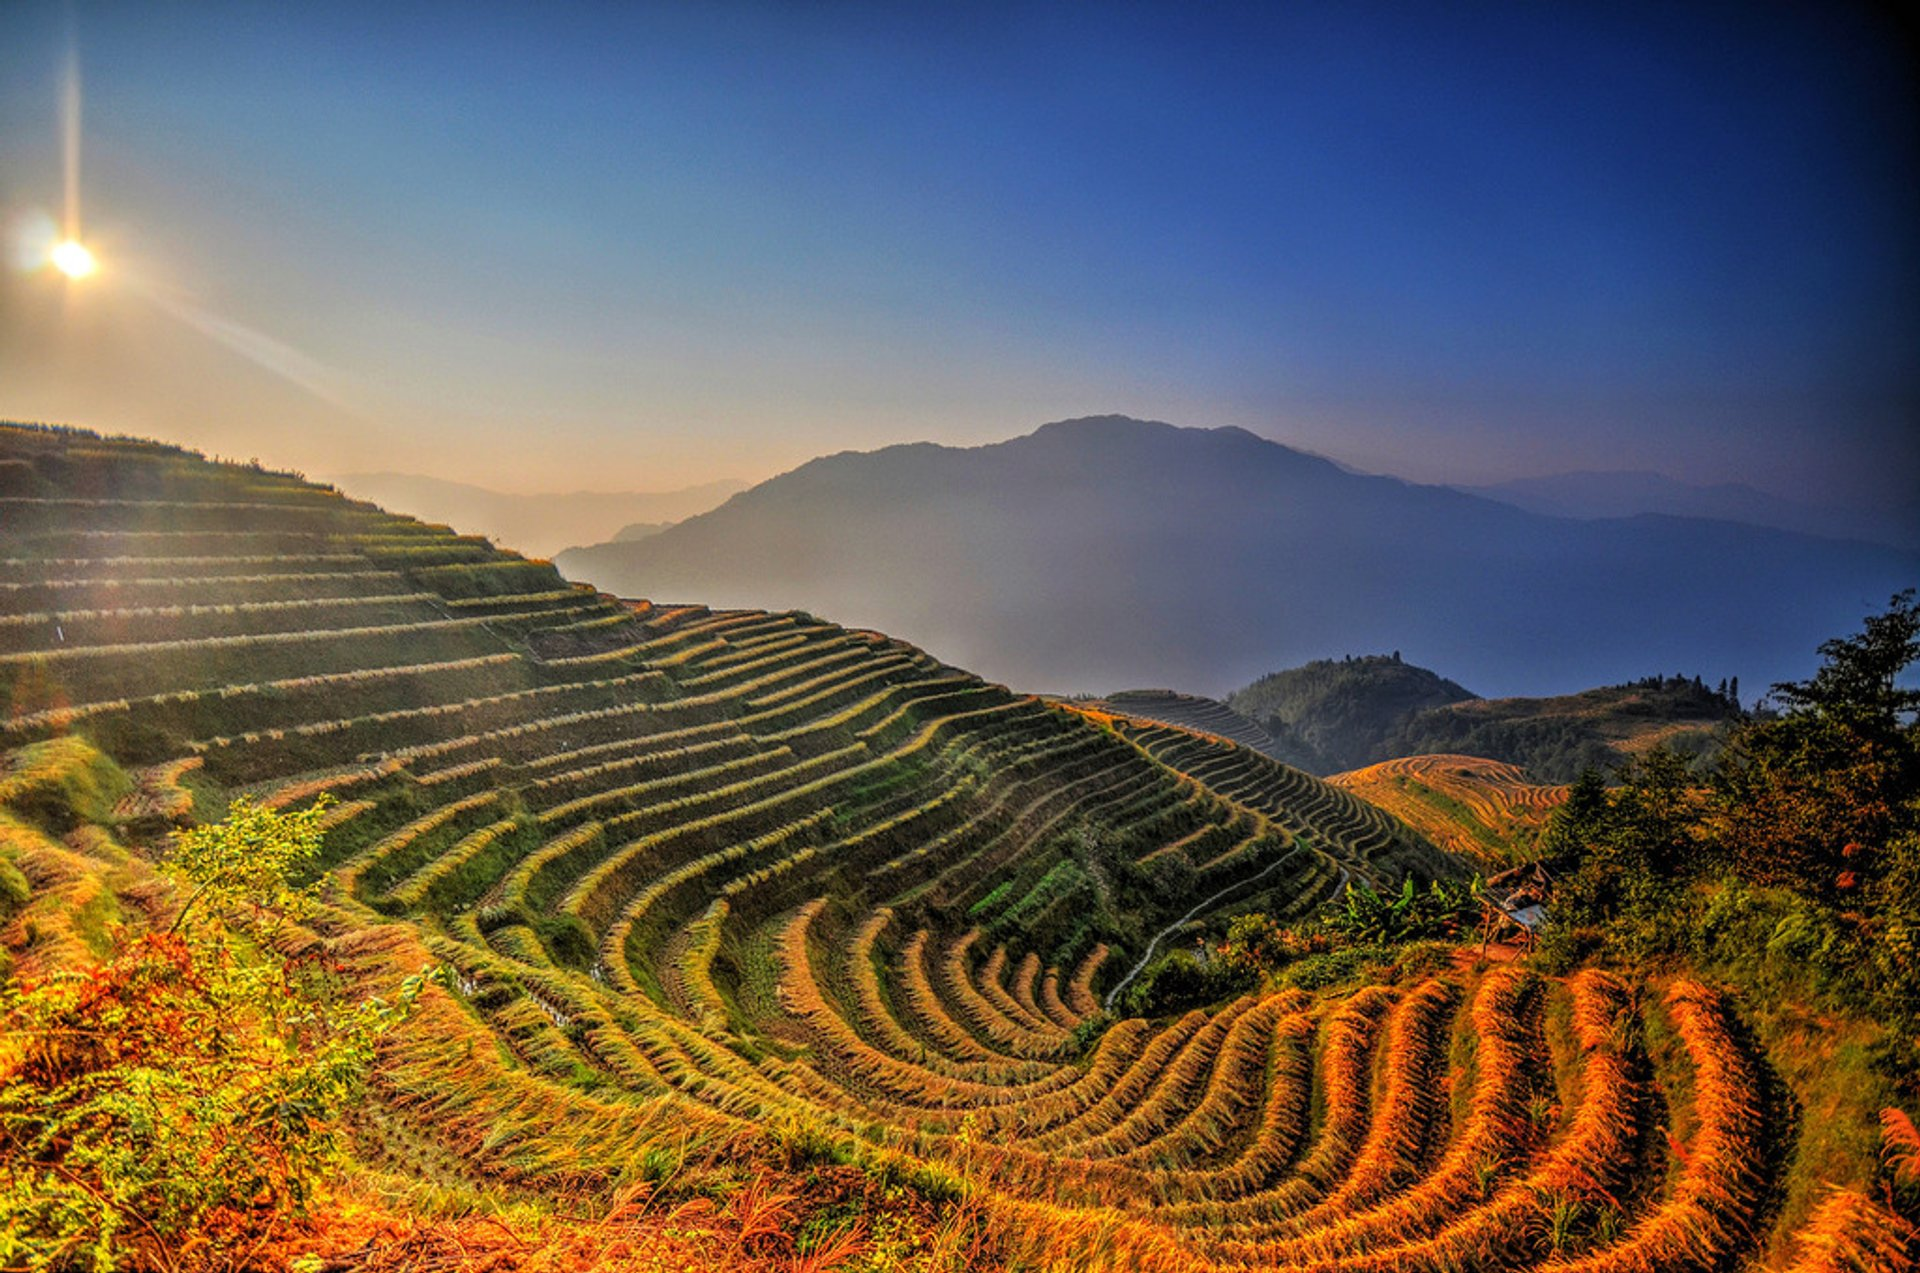 Best time for Longsheng (Longji) Rice Terraces 2020